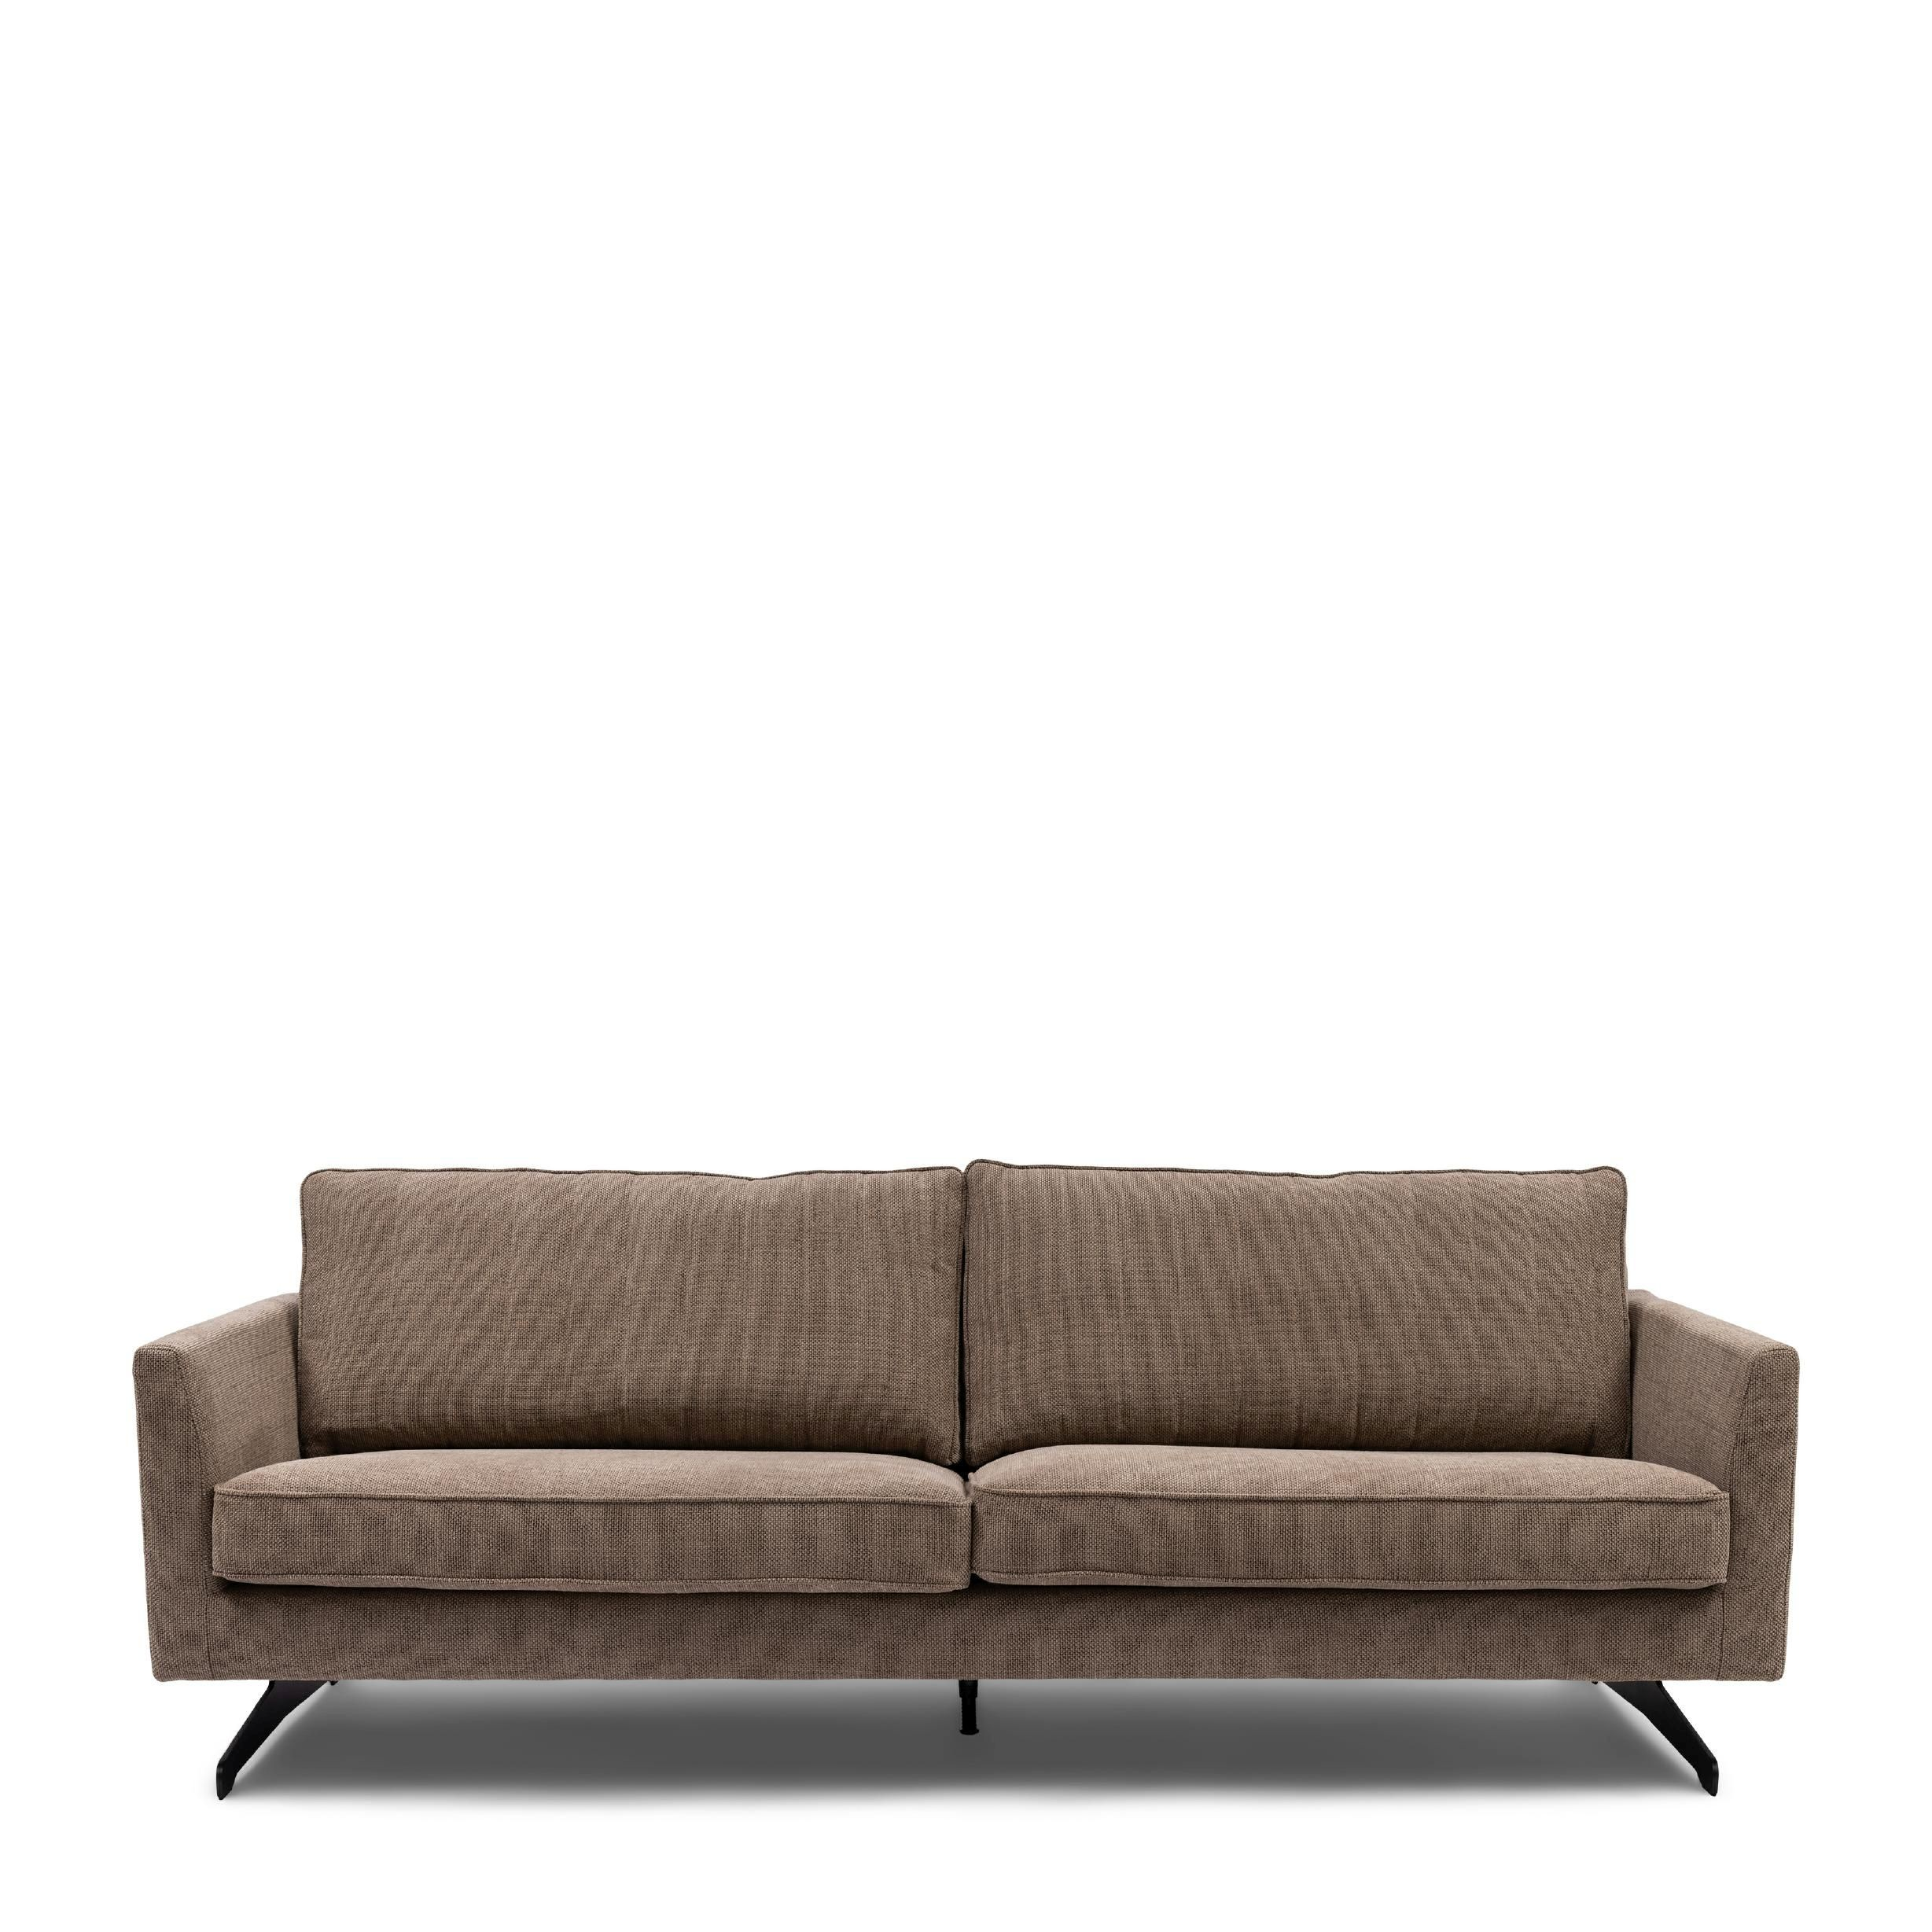 The Camille Sofa 3 Seater celtic weave melting silver / Rivièra Maison